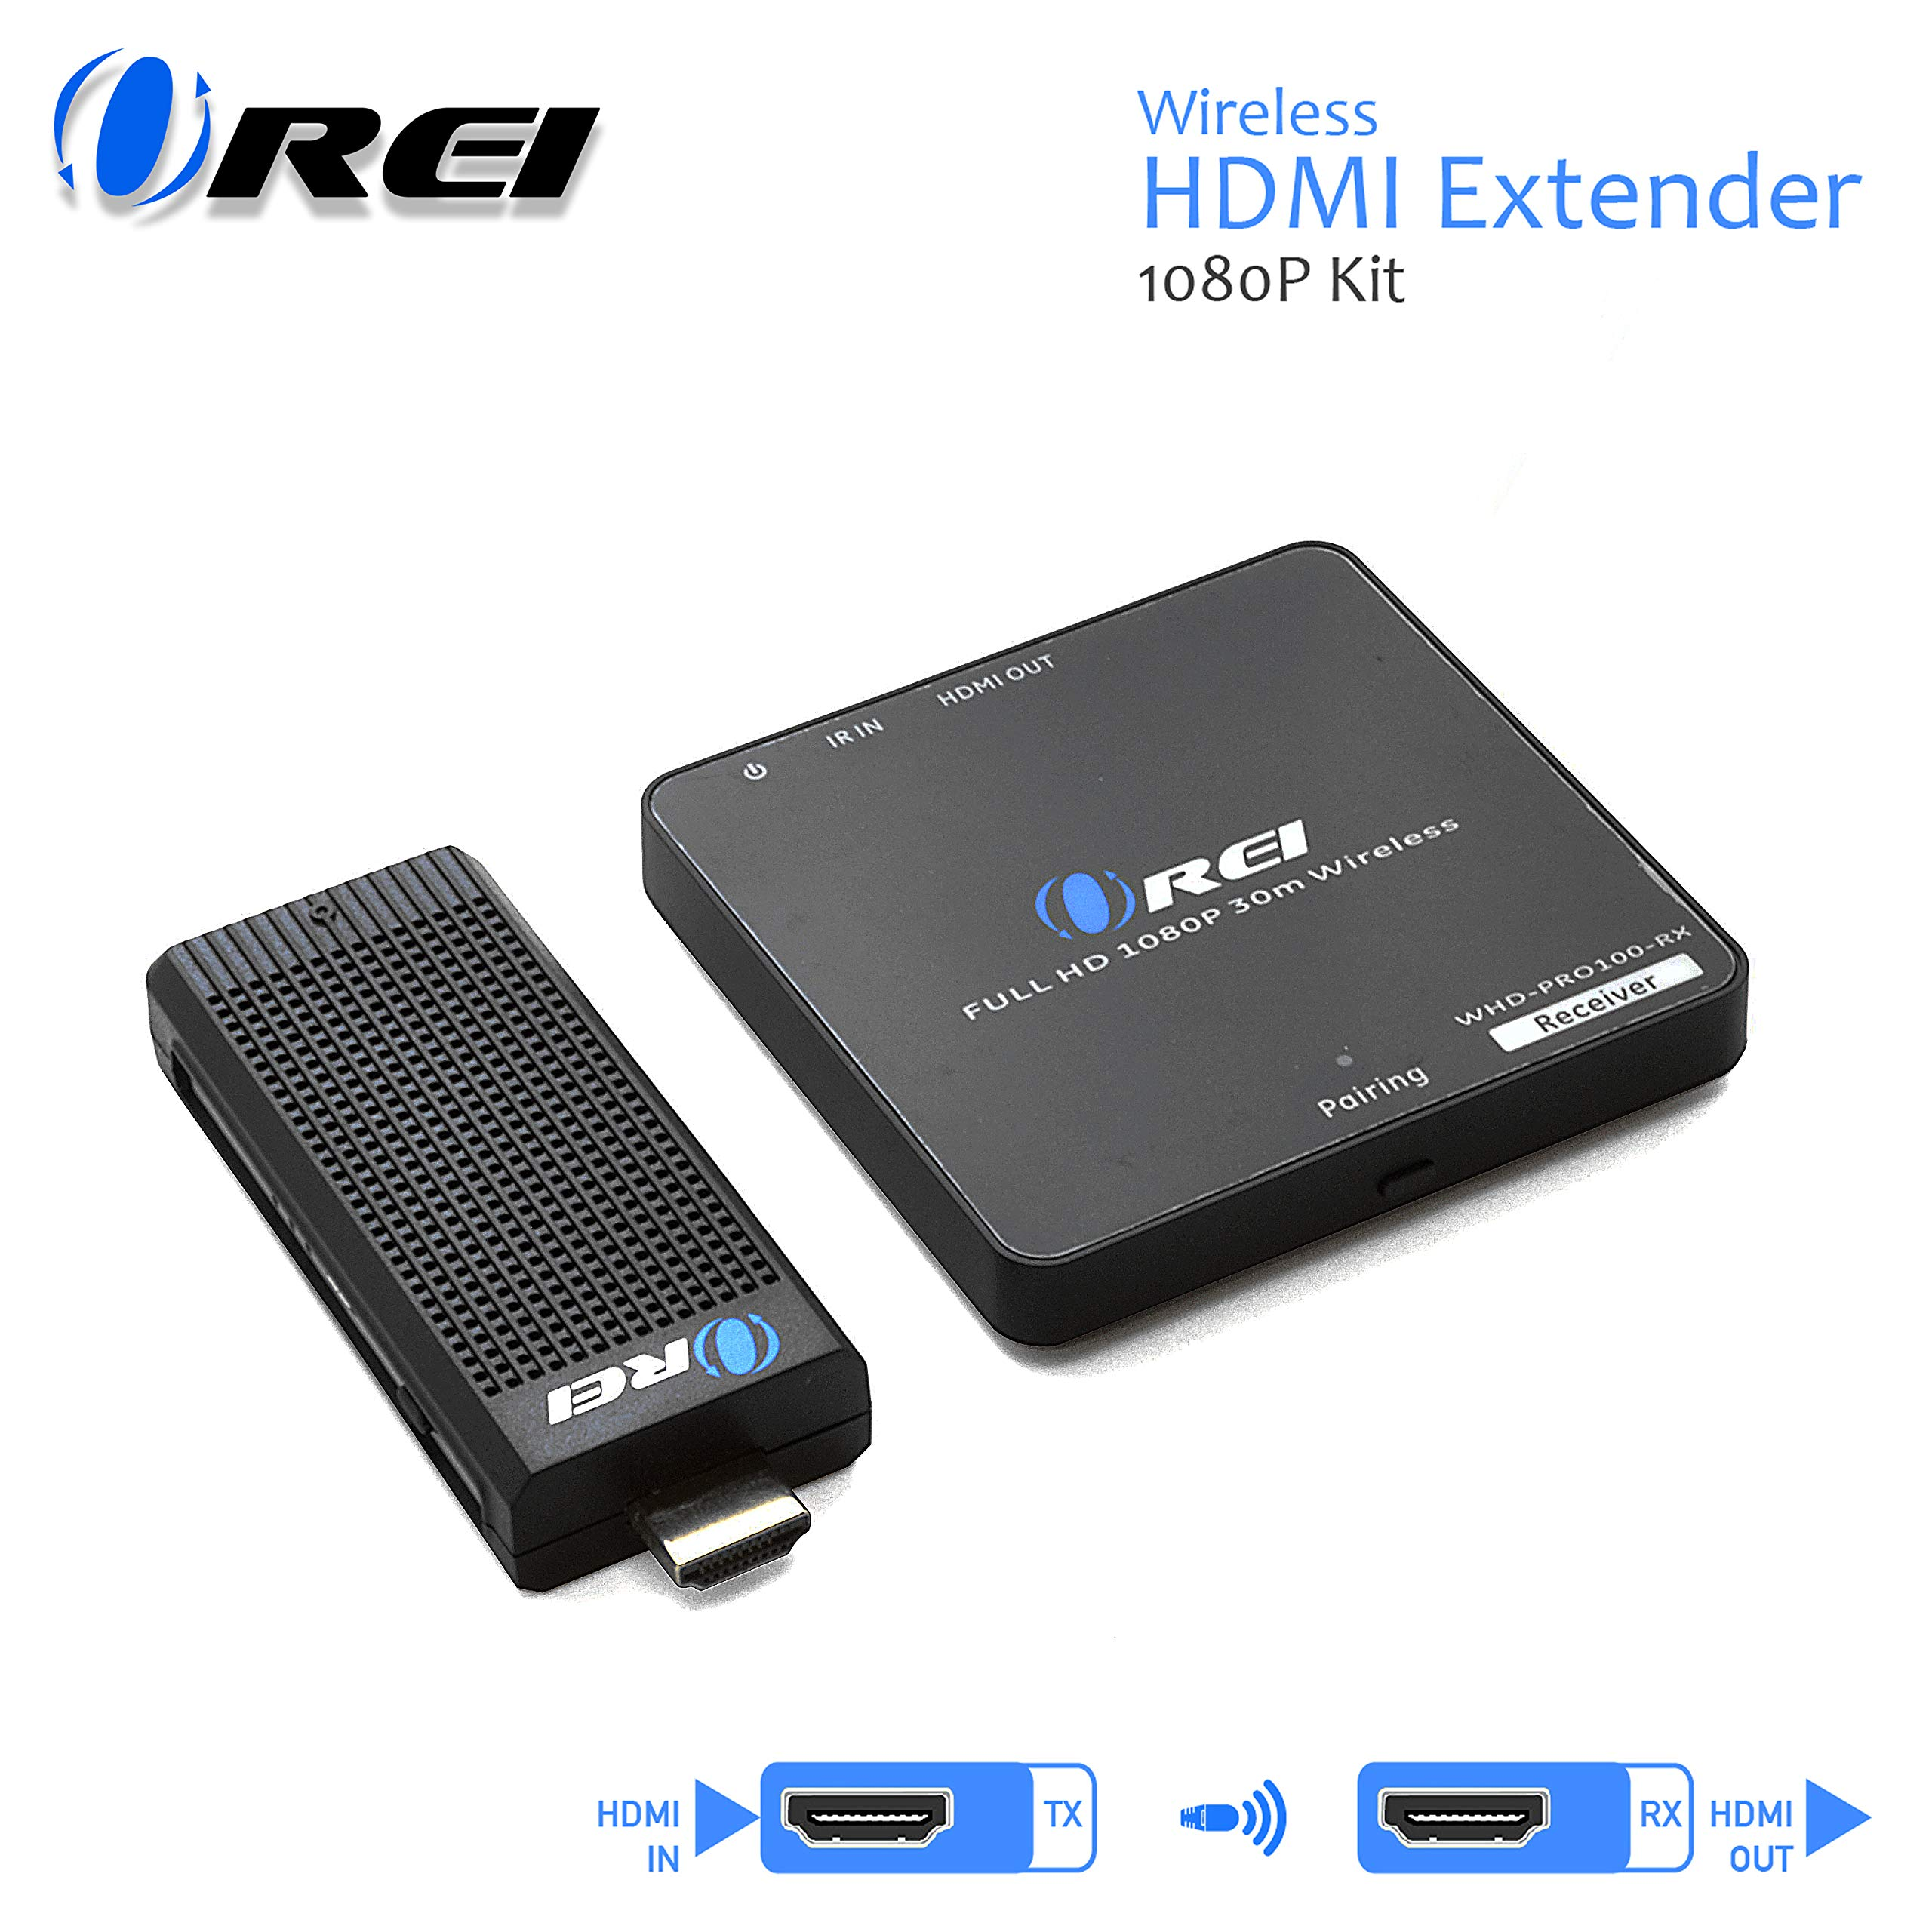 Orei Wireless Pro HDMI Extender Transmitter & Receiver Dongle 1080P Kit - Up to 100 ft. - Perfect for Streaming from Laptop, PC, Cable, Netflix, YouTube, PS4 to HDTV/Projector